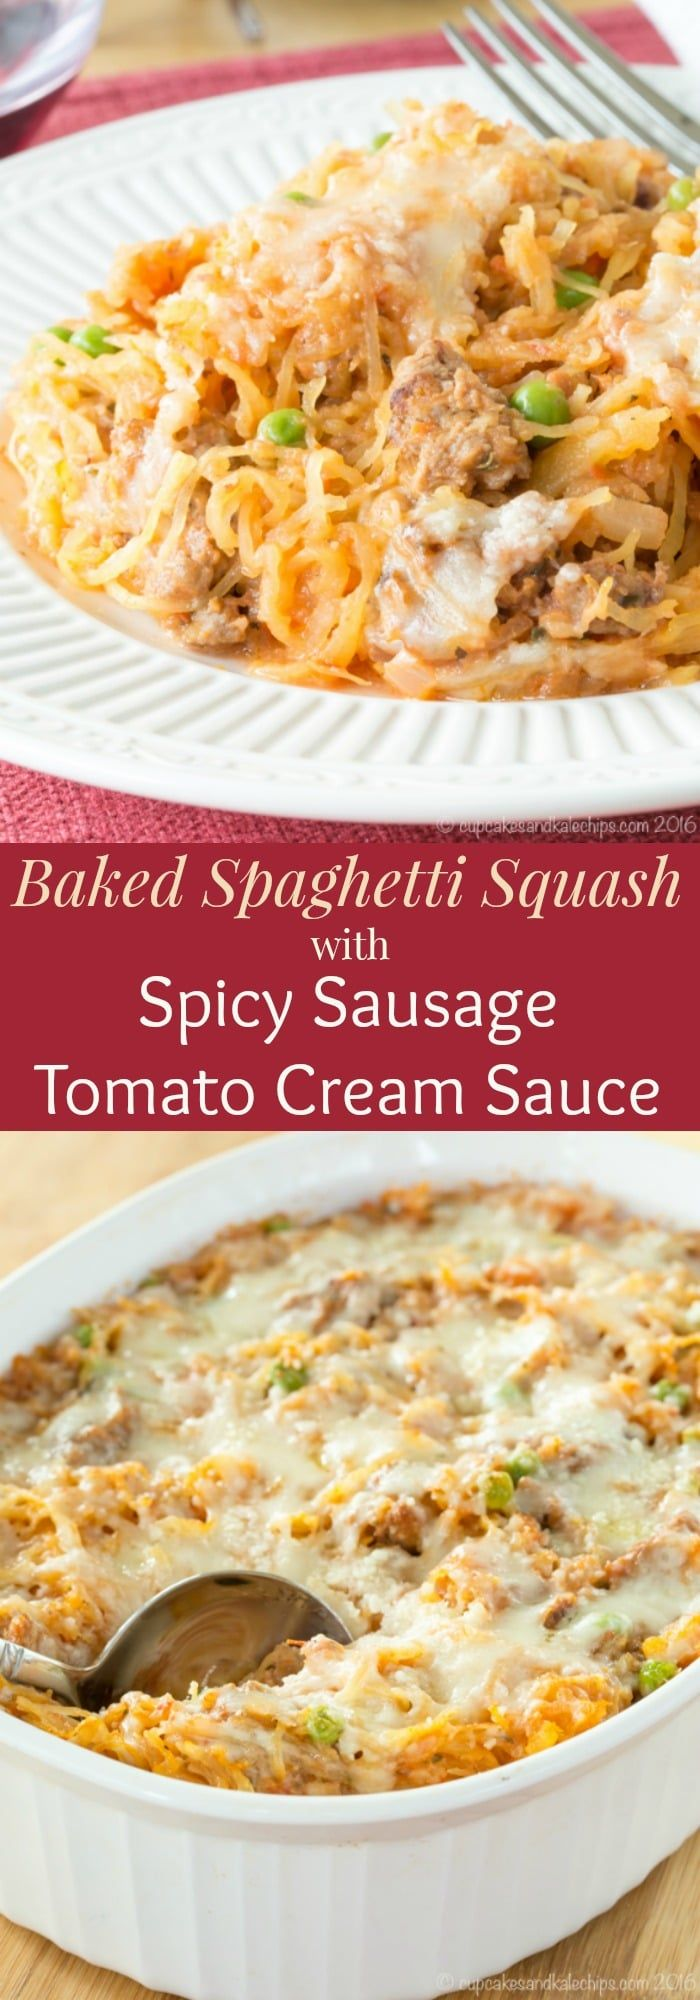 Baked Spaghetti Squash with Spicy Sausage Tomato Cream Sauce - a healthy, gluten free, low carb comfort food that's just as creamy, cheesy, and delicious as any pasta casserole recipe. #spaghettisquash #glutenfree #lowcarb via @cupcakekalechip